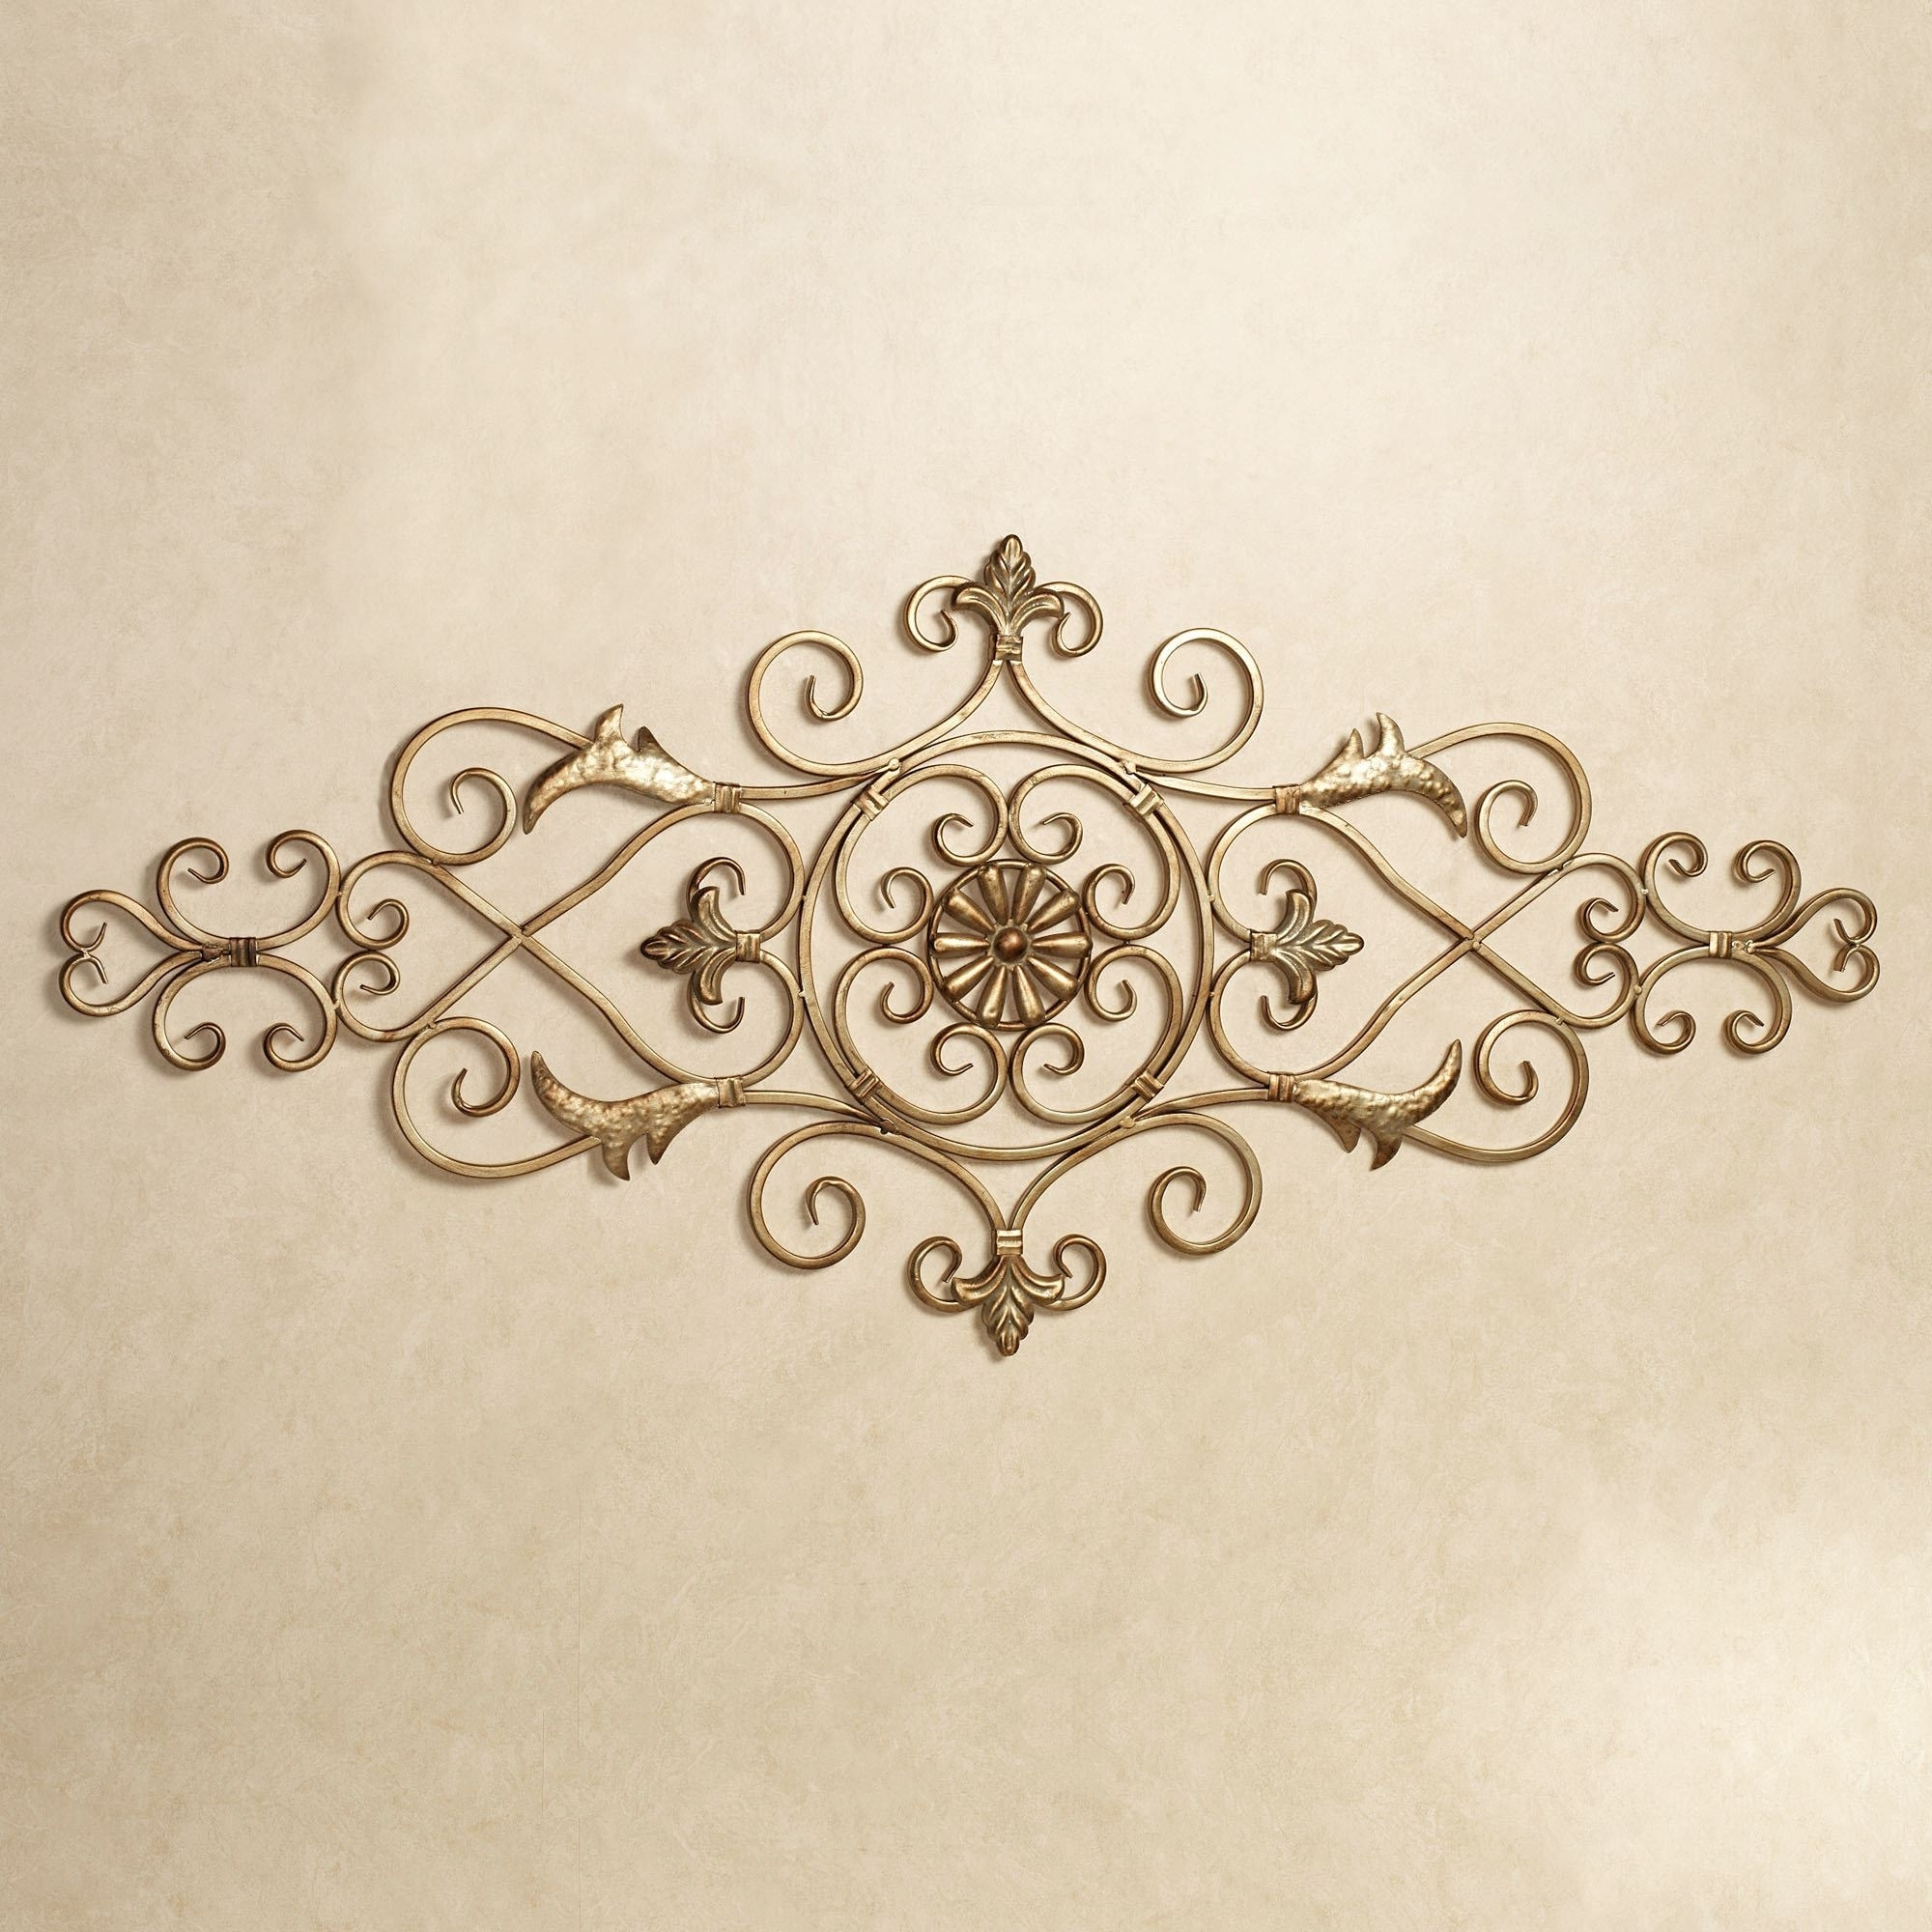 Merano Scrolling Metal Wall Grille Regarding Most Popular Gold Wall Accents (Gallery 13 of 15)